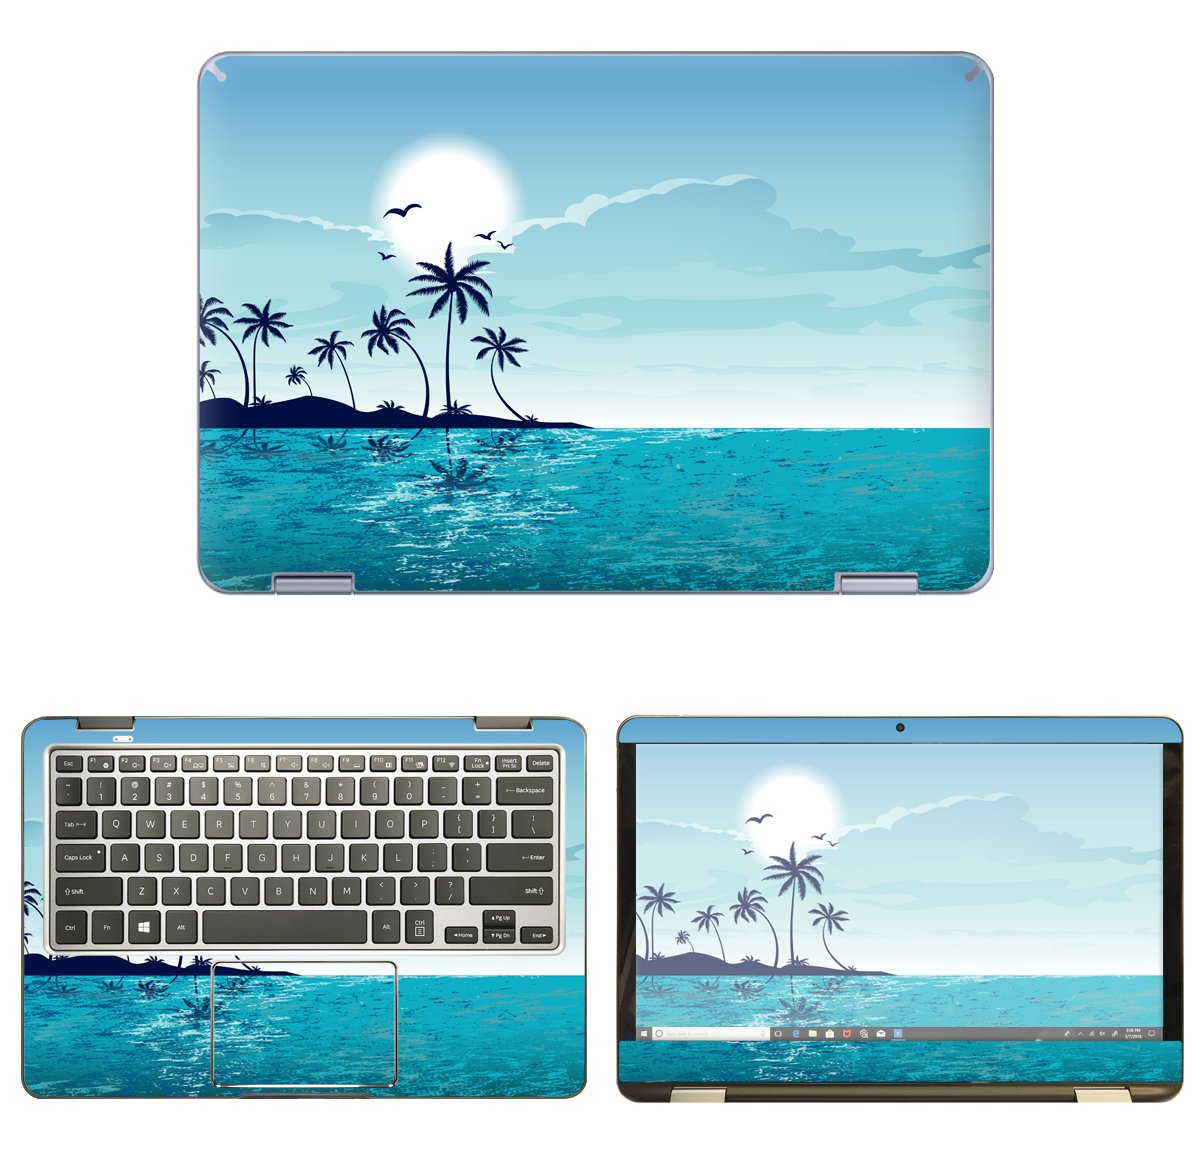 decalrus - Protective Decal Beach Skin Sticker for Samsung Notebook 7 Spin NP730QAA (13.3'' Screen) case Cover wrap SAntbk7_np730qaa-96